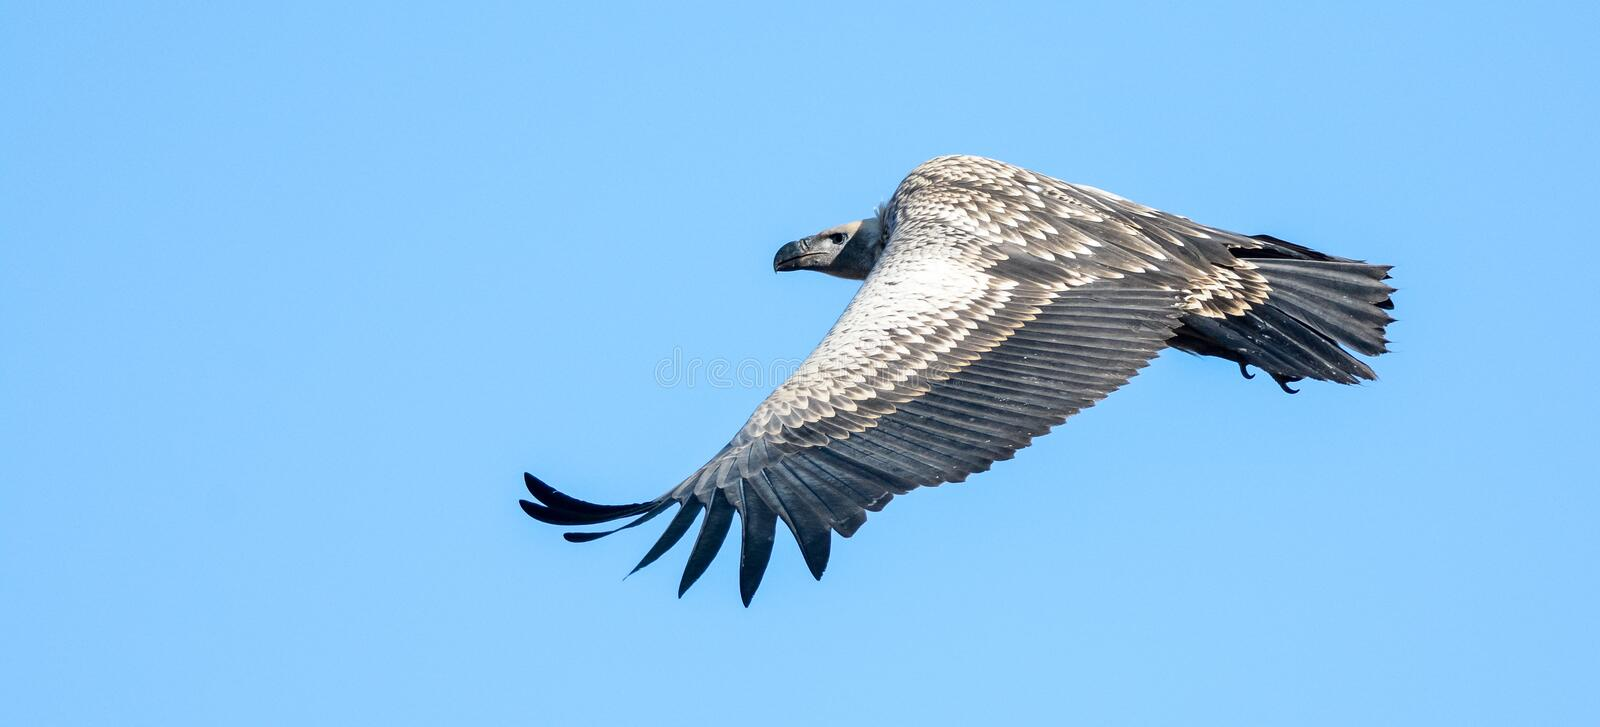 Soaring Cape Vulture stock images